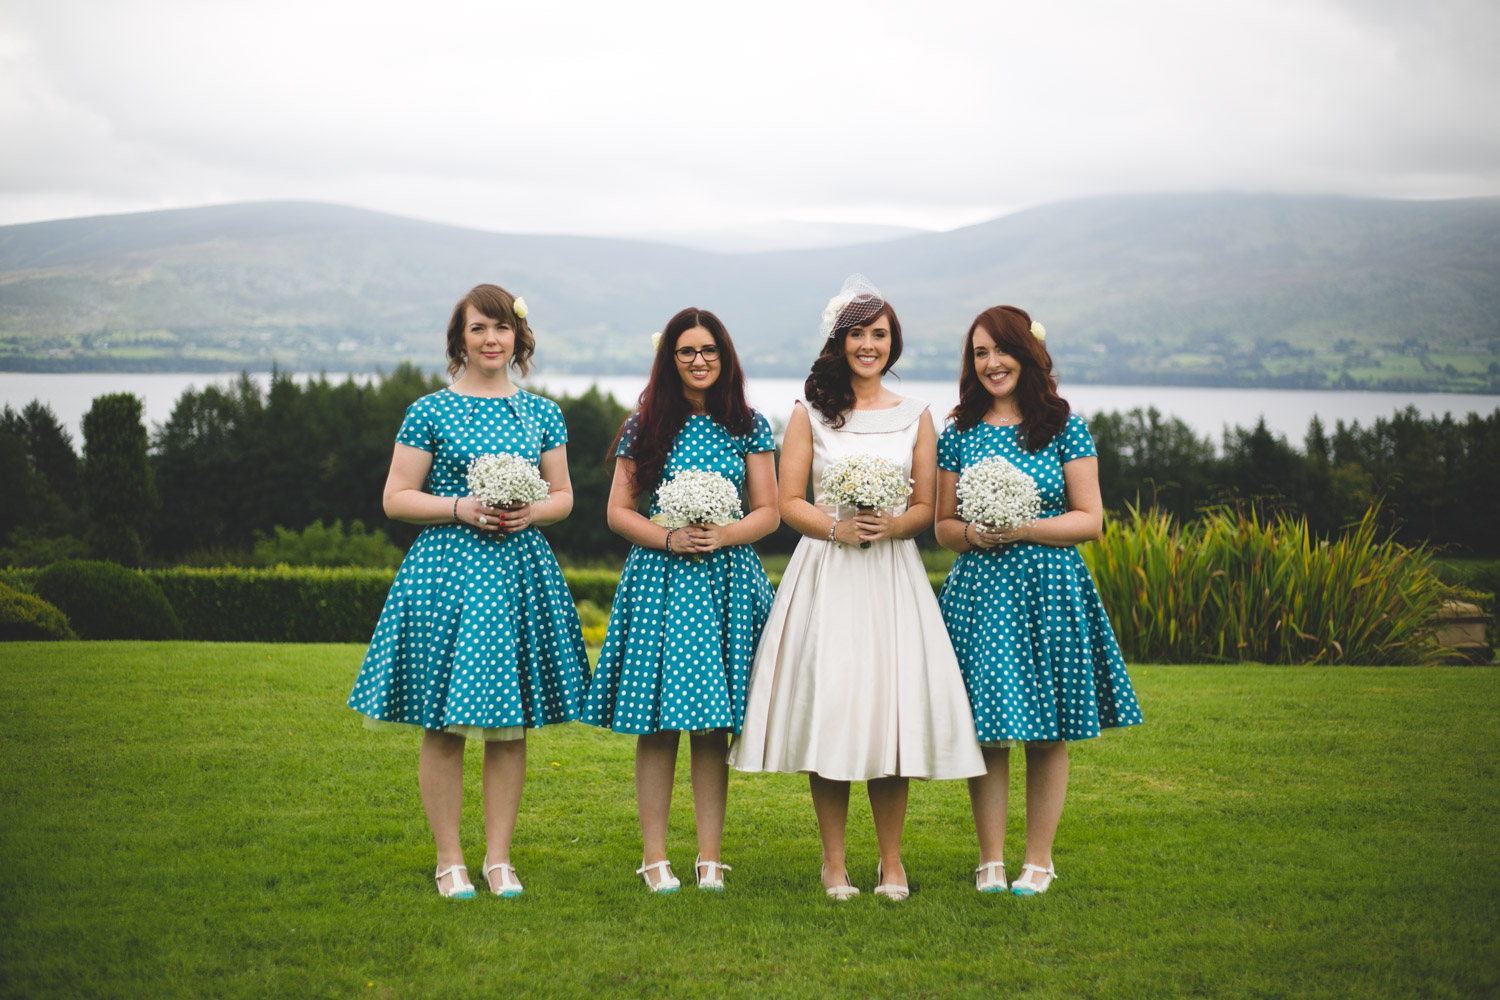 Bridal party portraits at Lakeside BnB Blessington